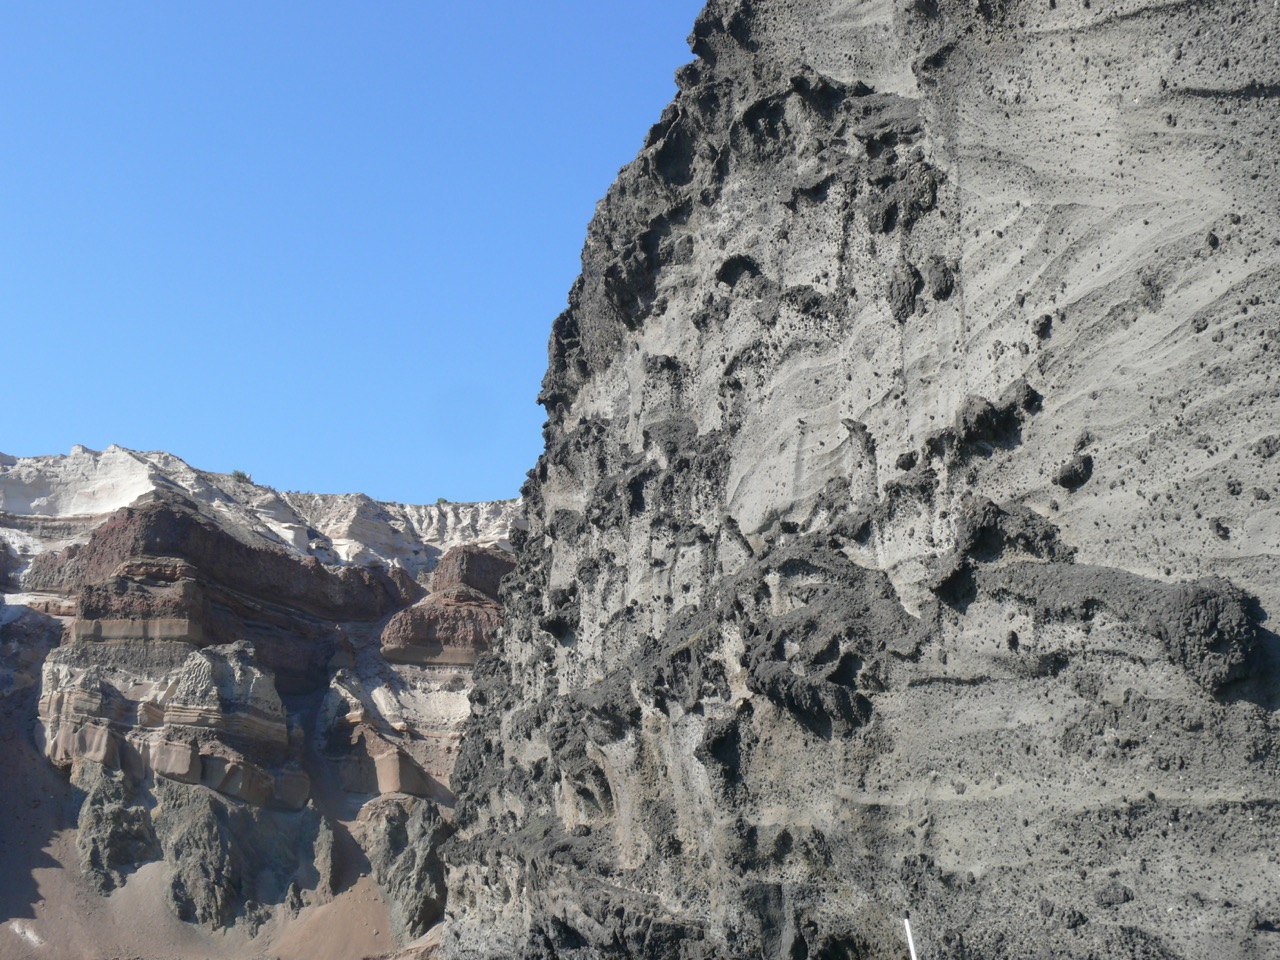 Layers of volcanic ash and pumice from multiple eruptions on Santorini